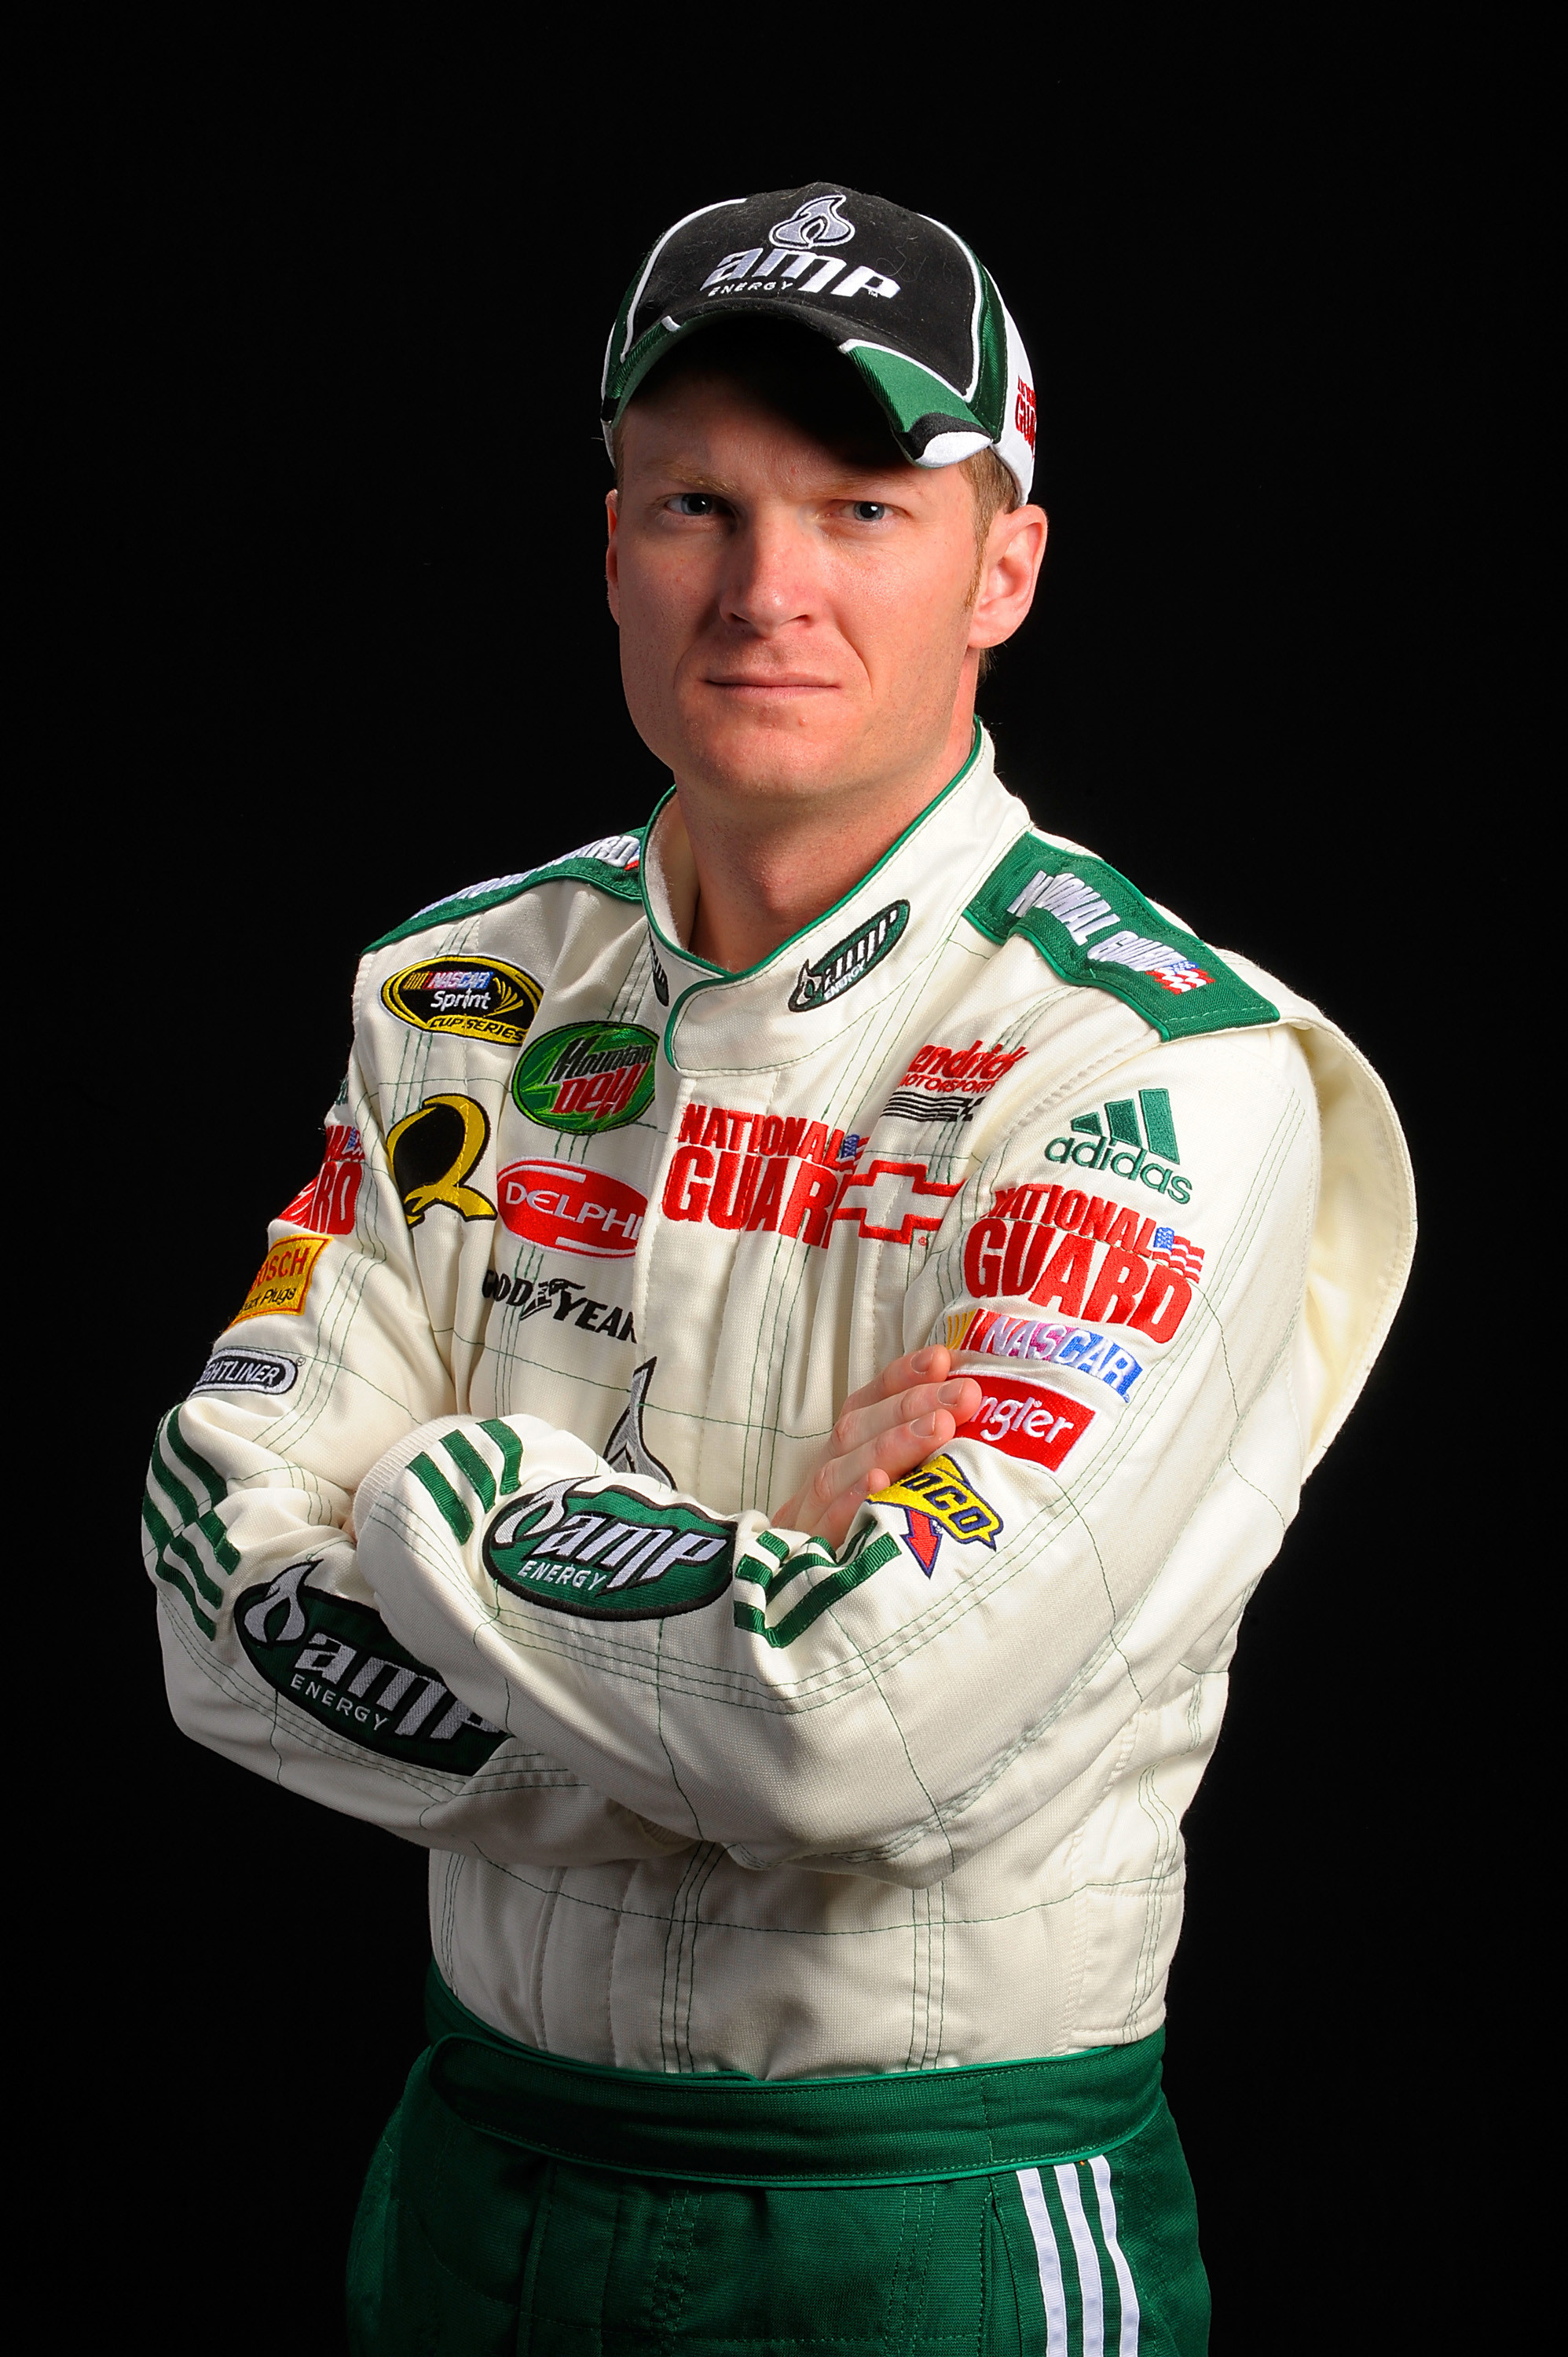 Dale Earnhardt Jr HD Wallpapers | Dale Earnhardt Jr Photos | FanPhobia .